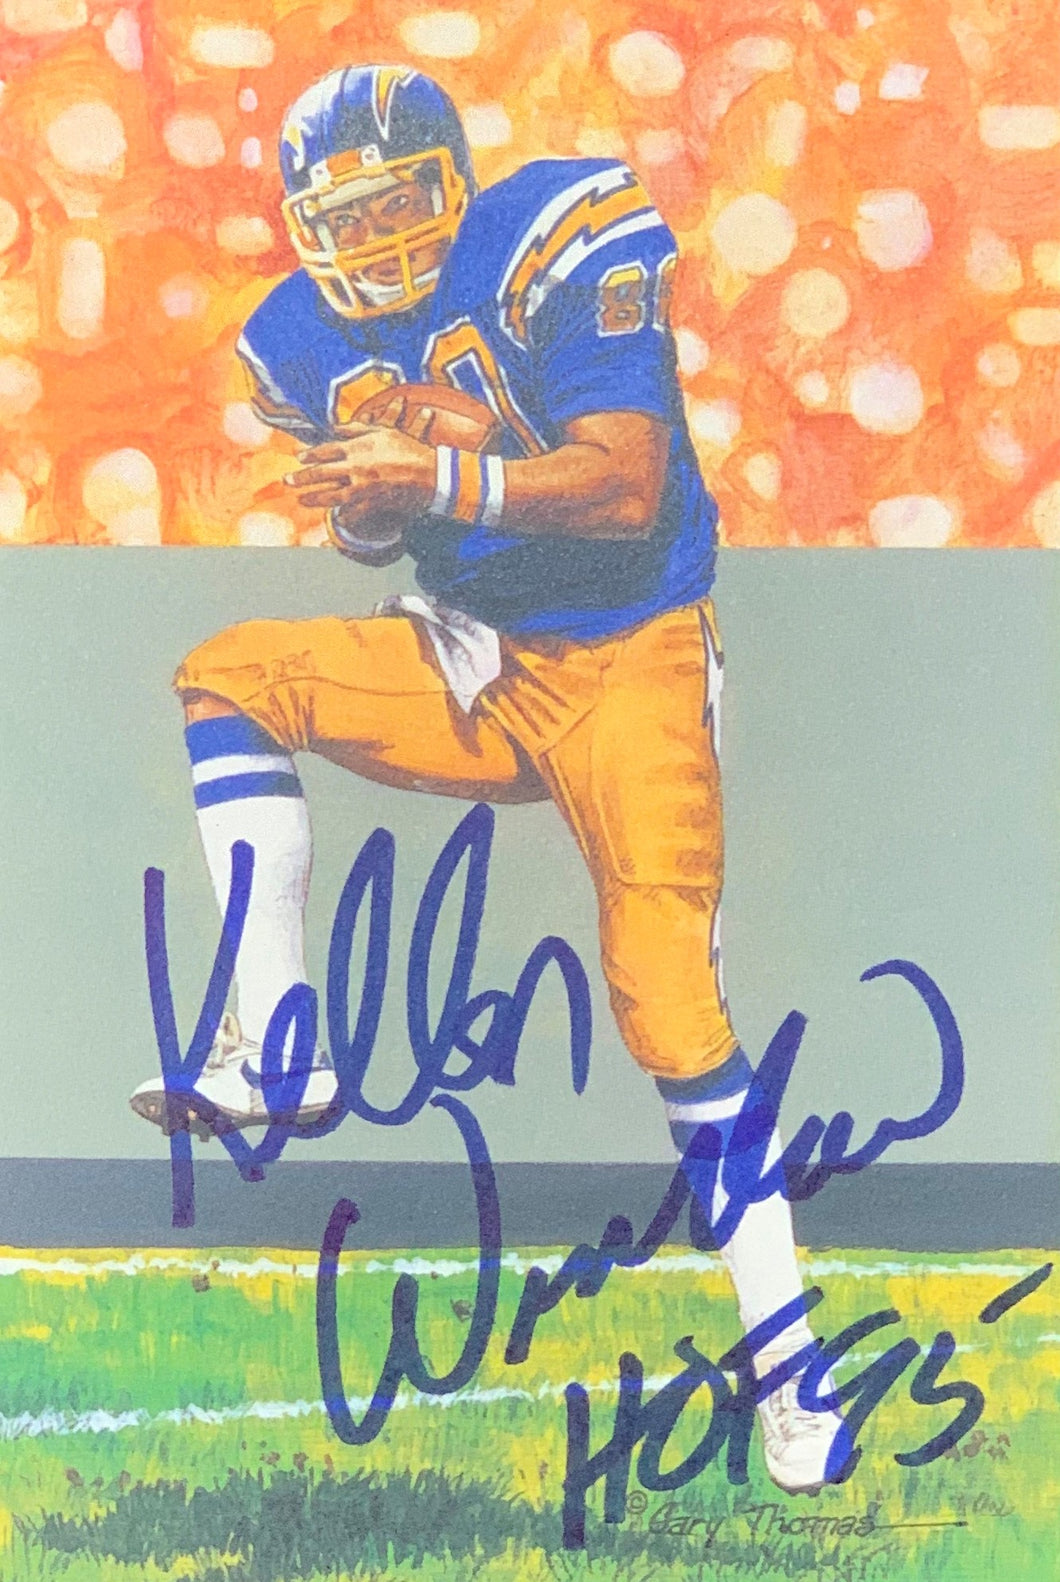 Kellen Winslow Los Angeles Chargers Signed Goal Line Art Card With JSA COA